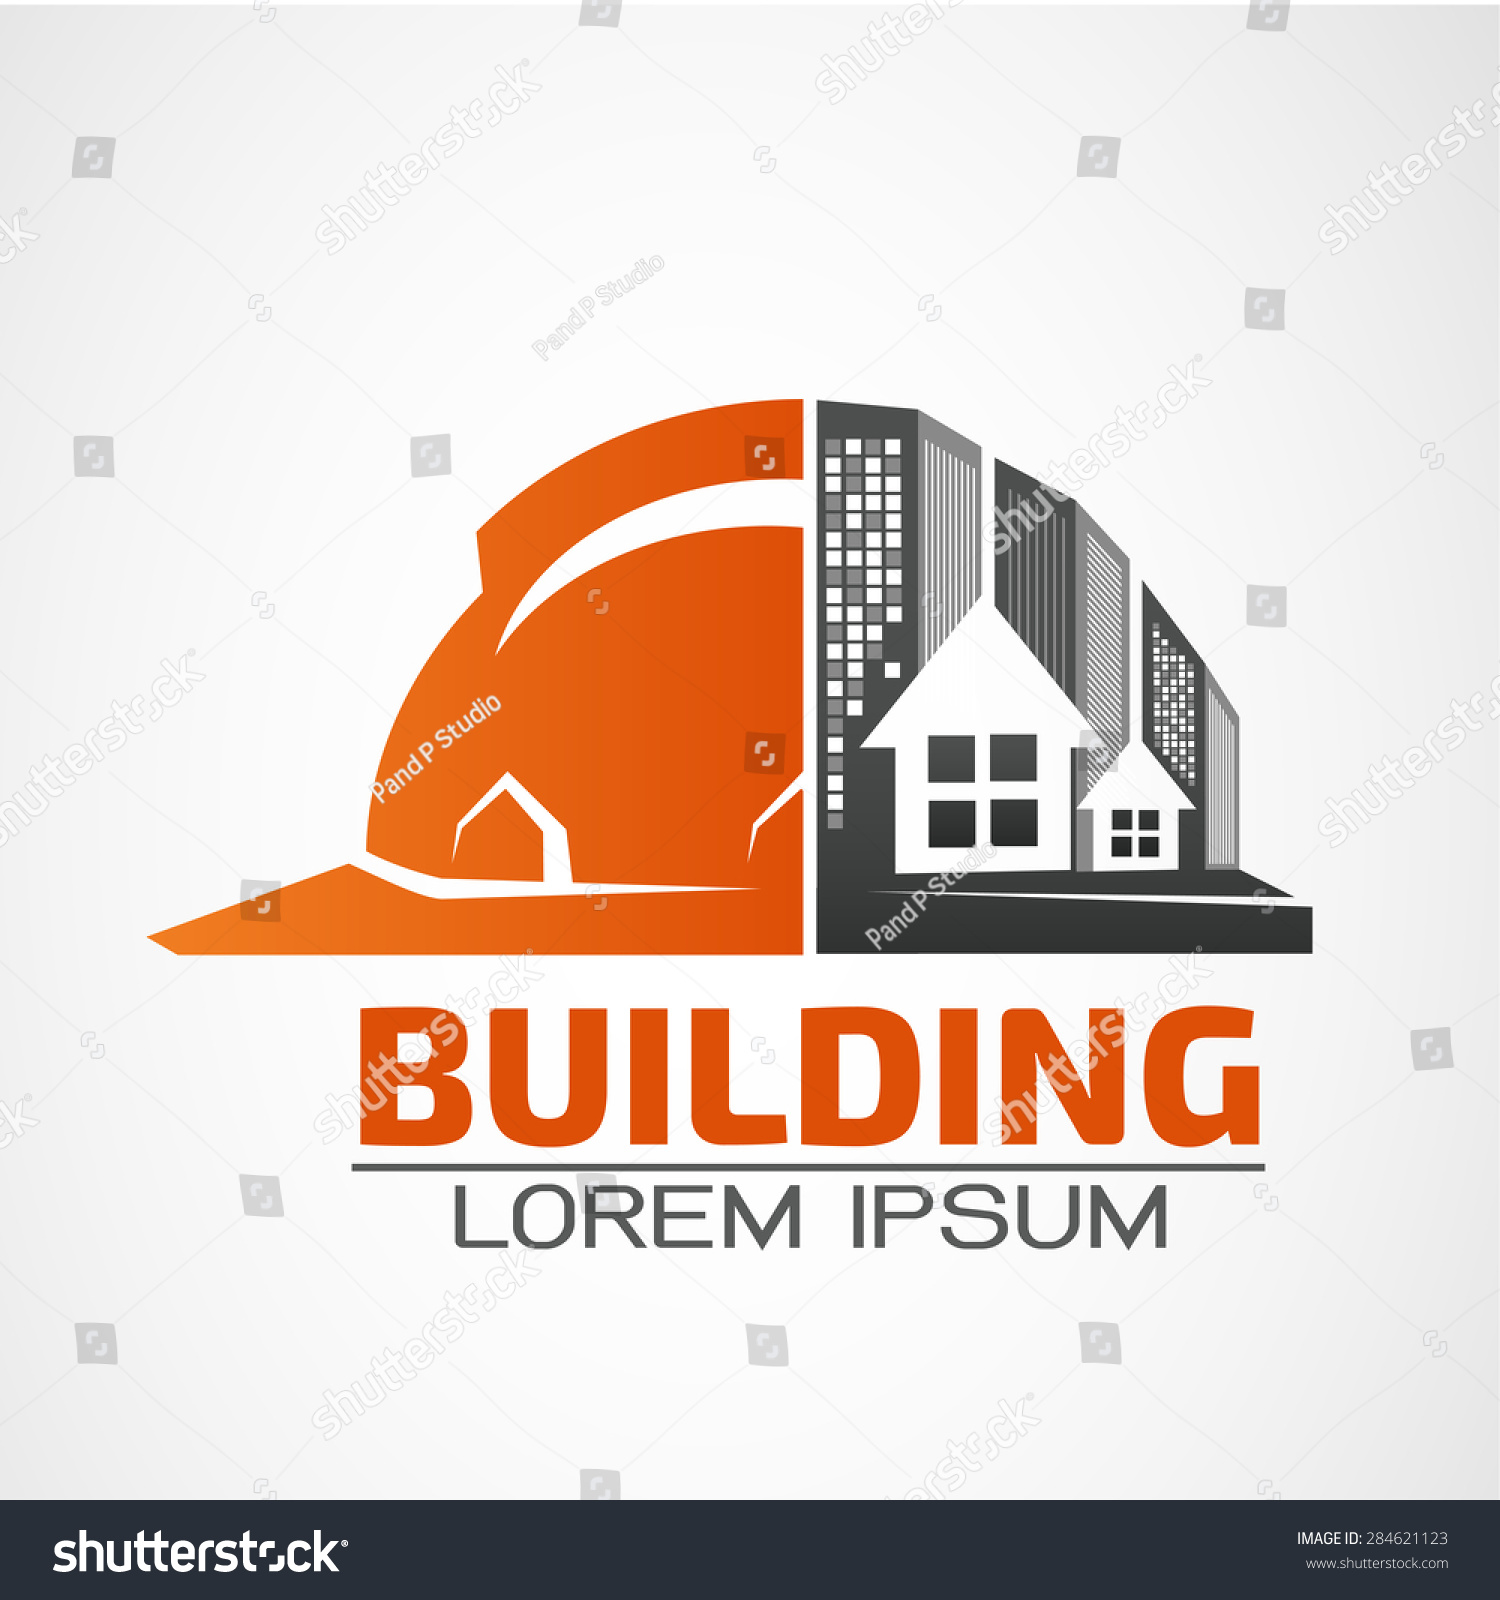 Building logoarchitecture building vector logo design for S architecture logo